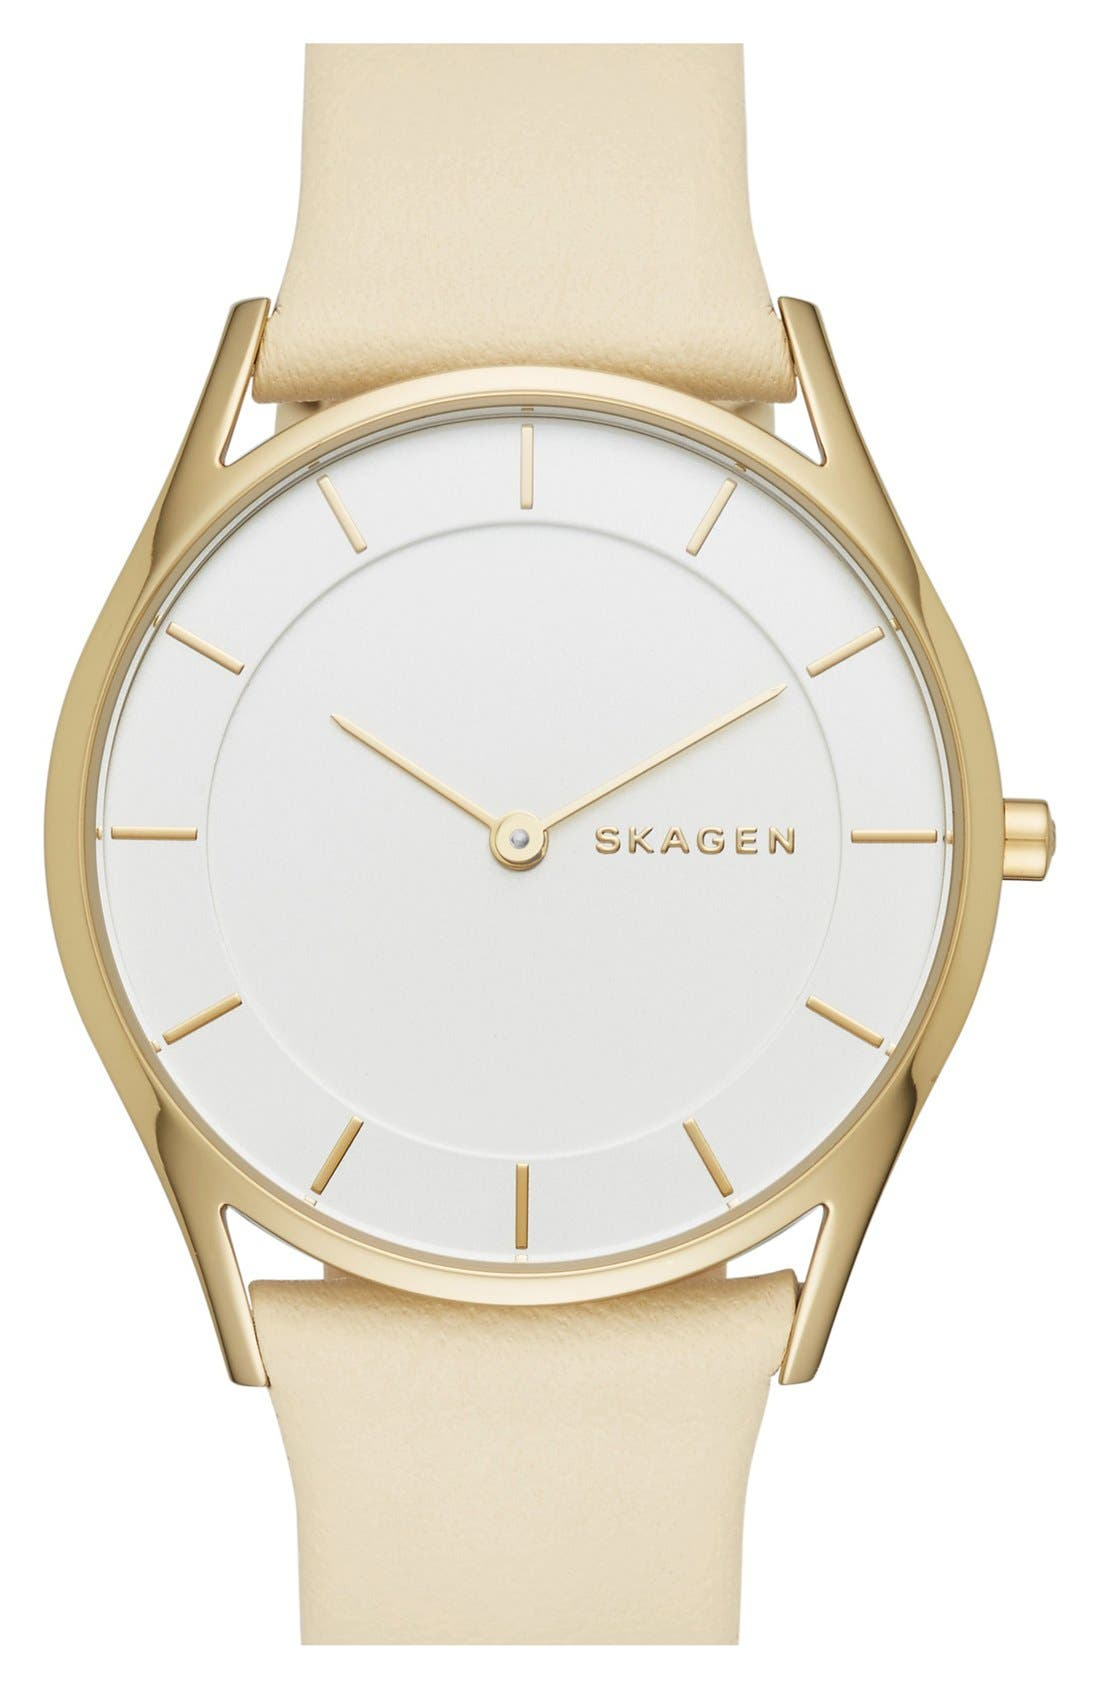 Main Image - Skagen 'Holst' Leather Strap Watch, 34mm